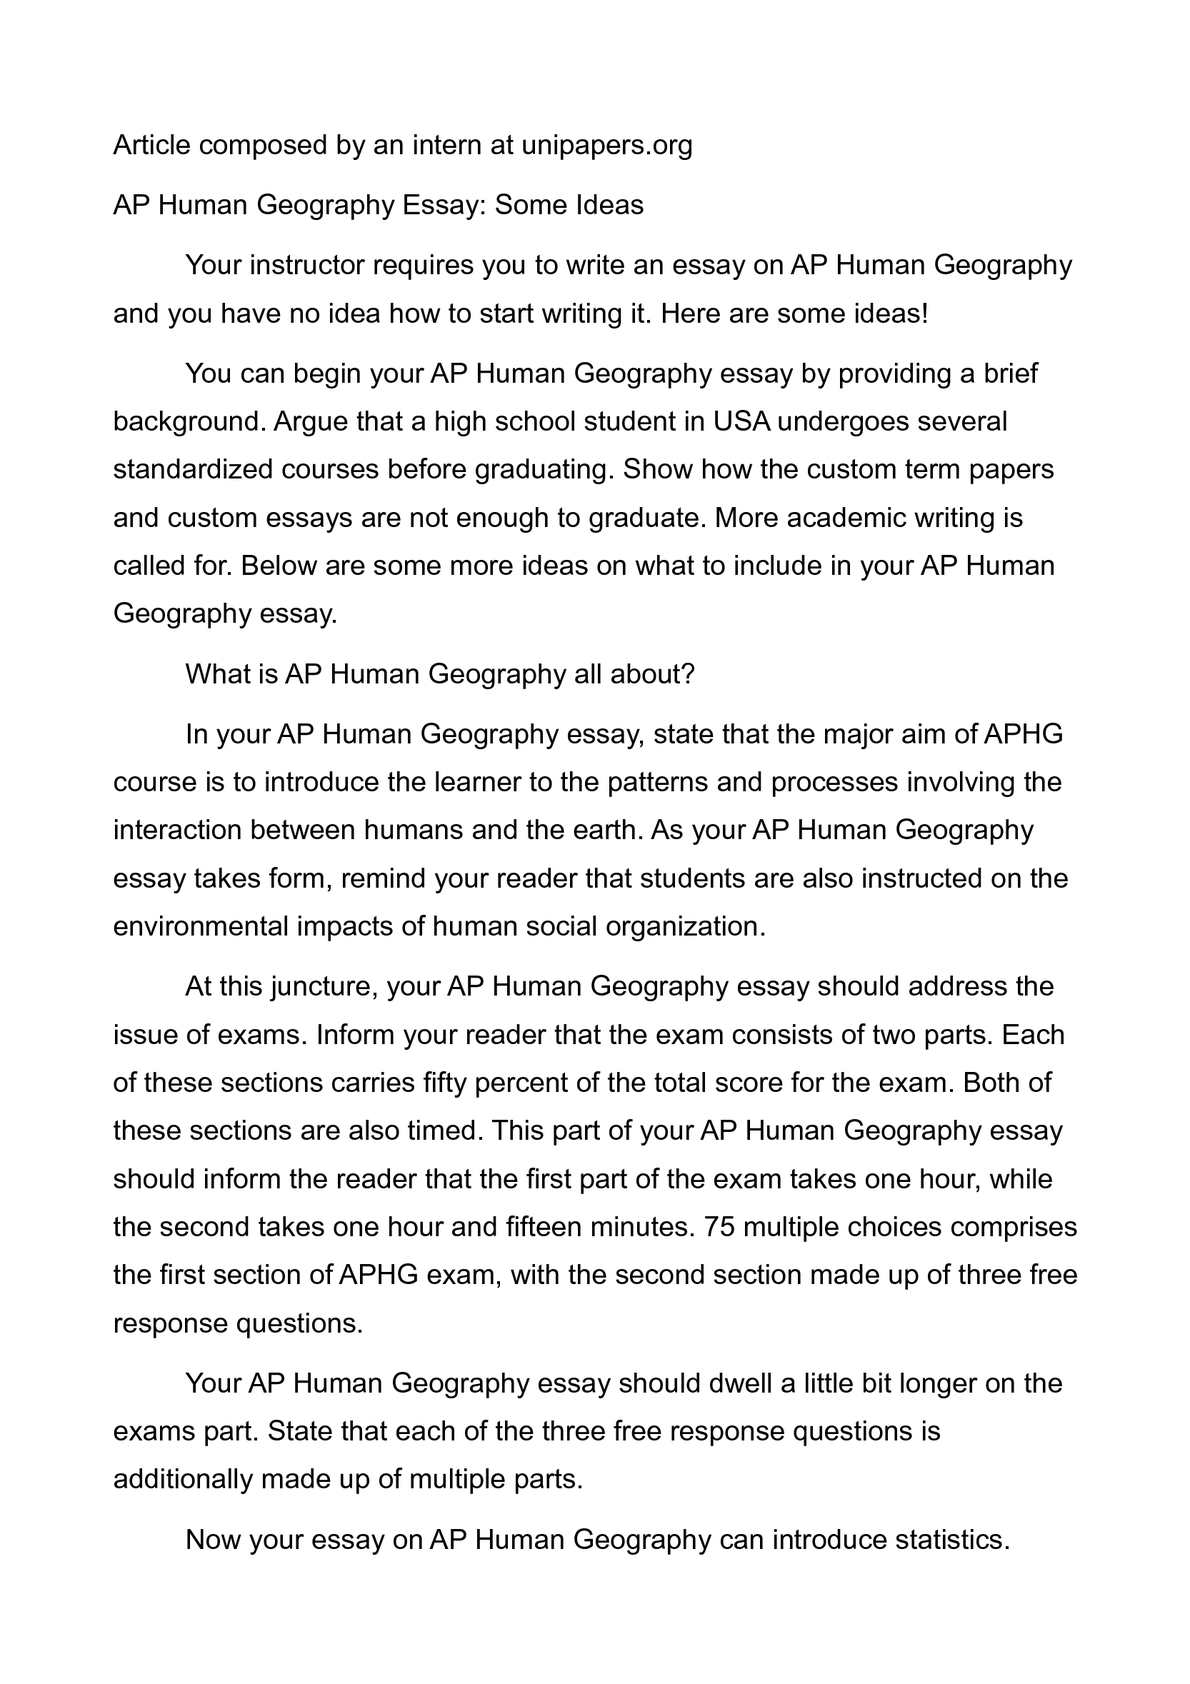 007 human geography essays 008684476 1